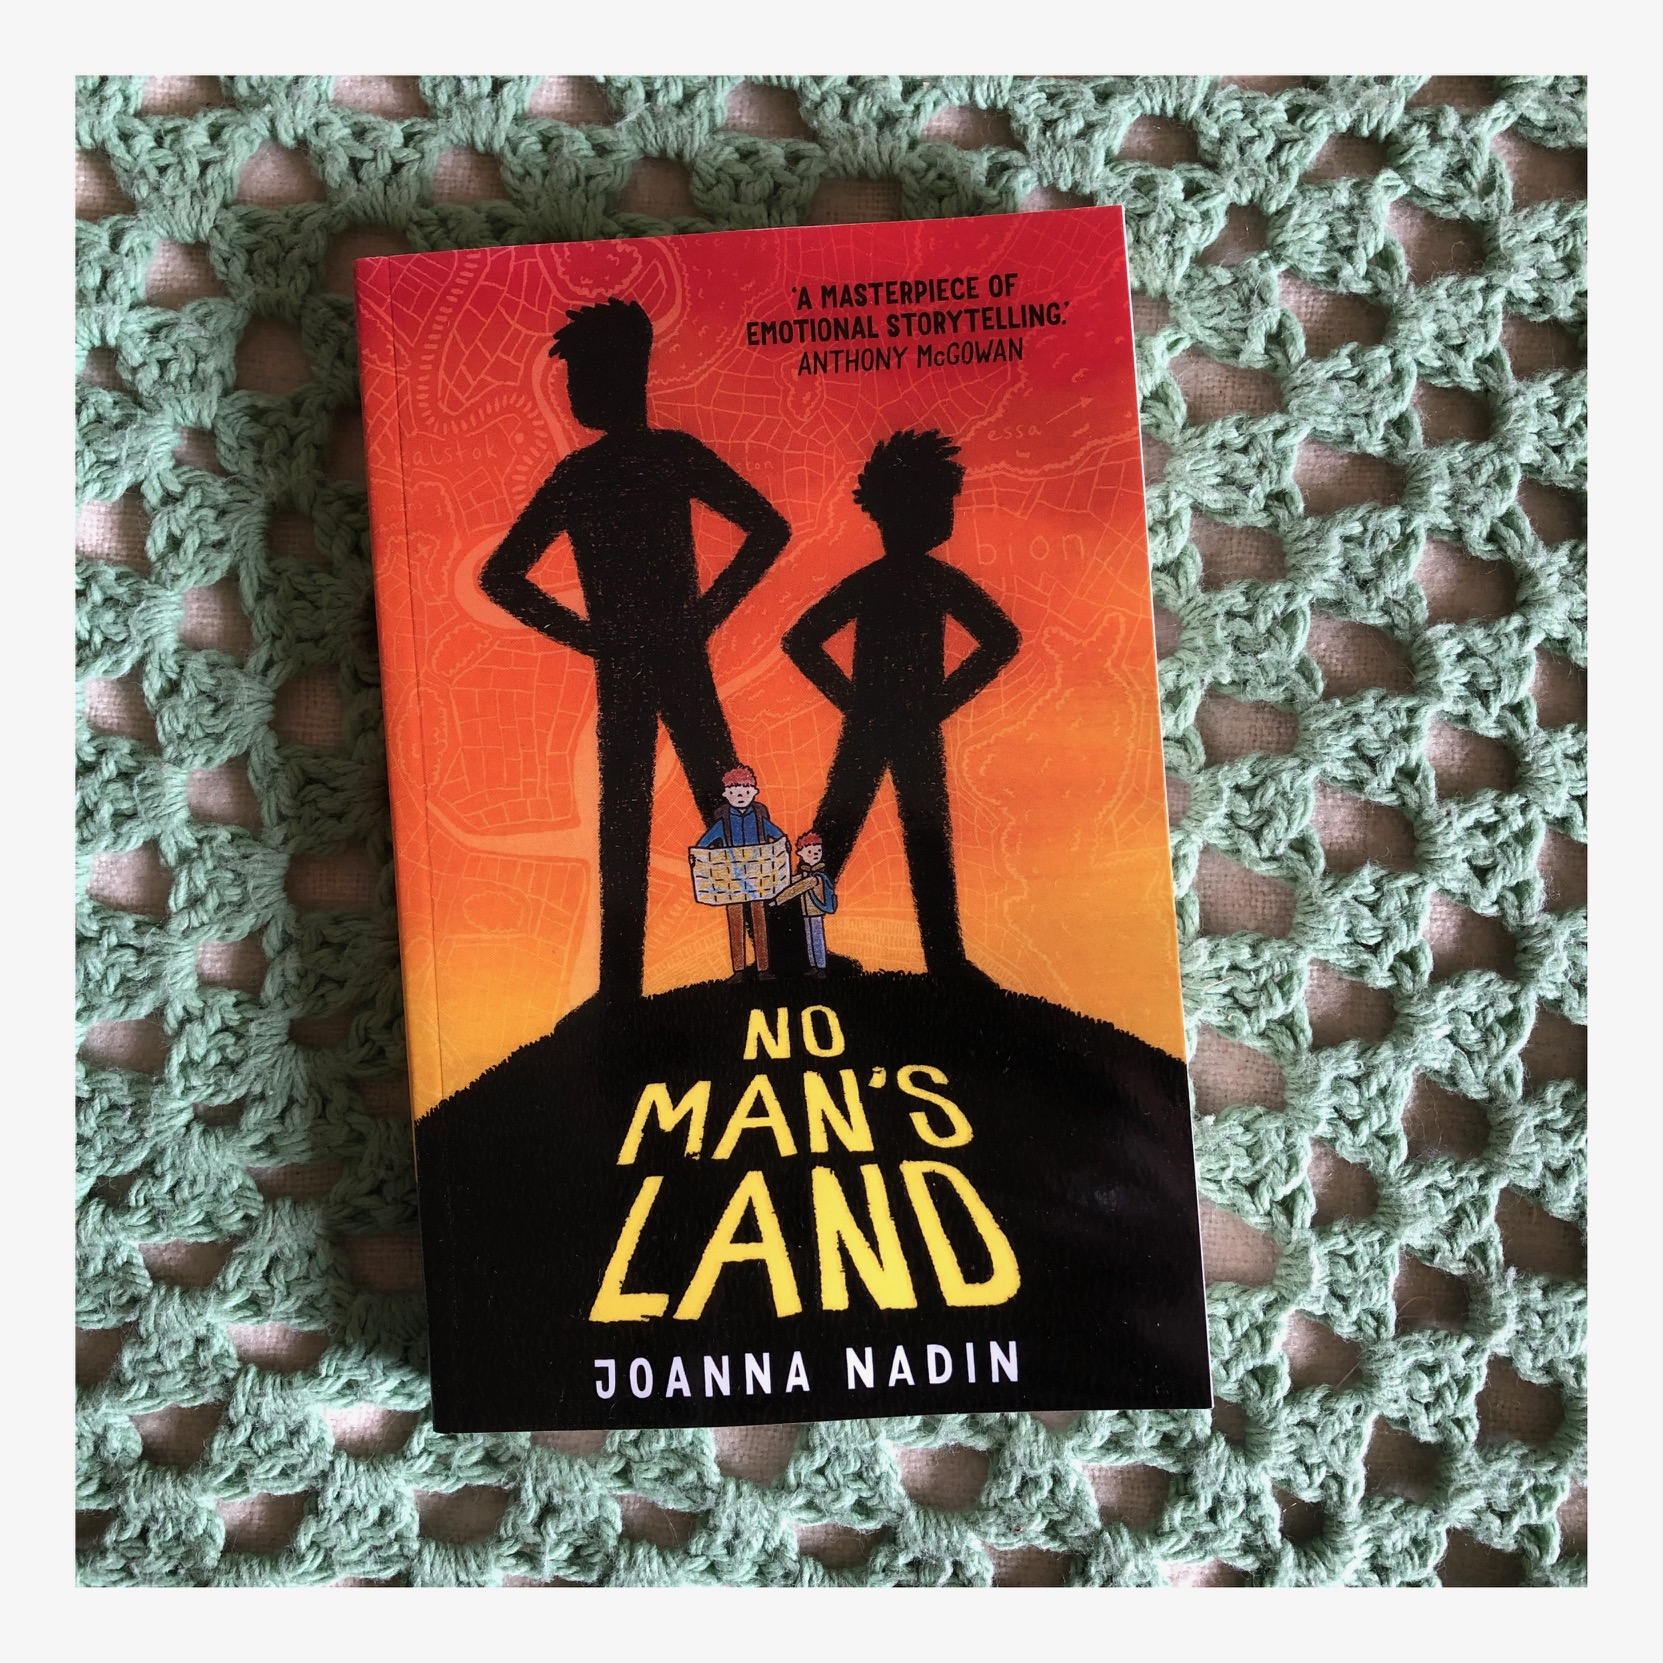 Book cover featuring two small books lost on a hill. Their shadows behind them are in superhero stance.